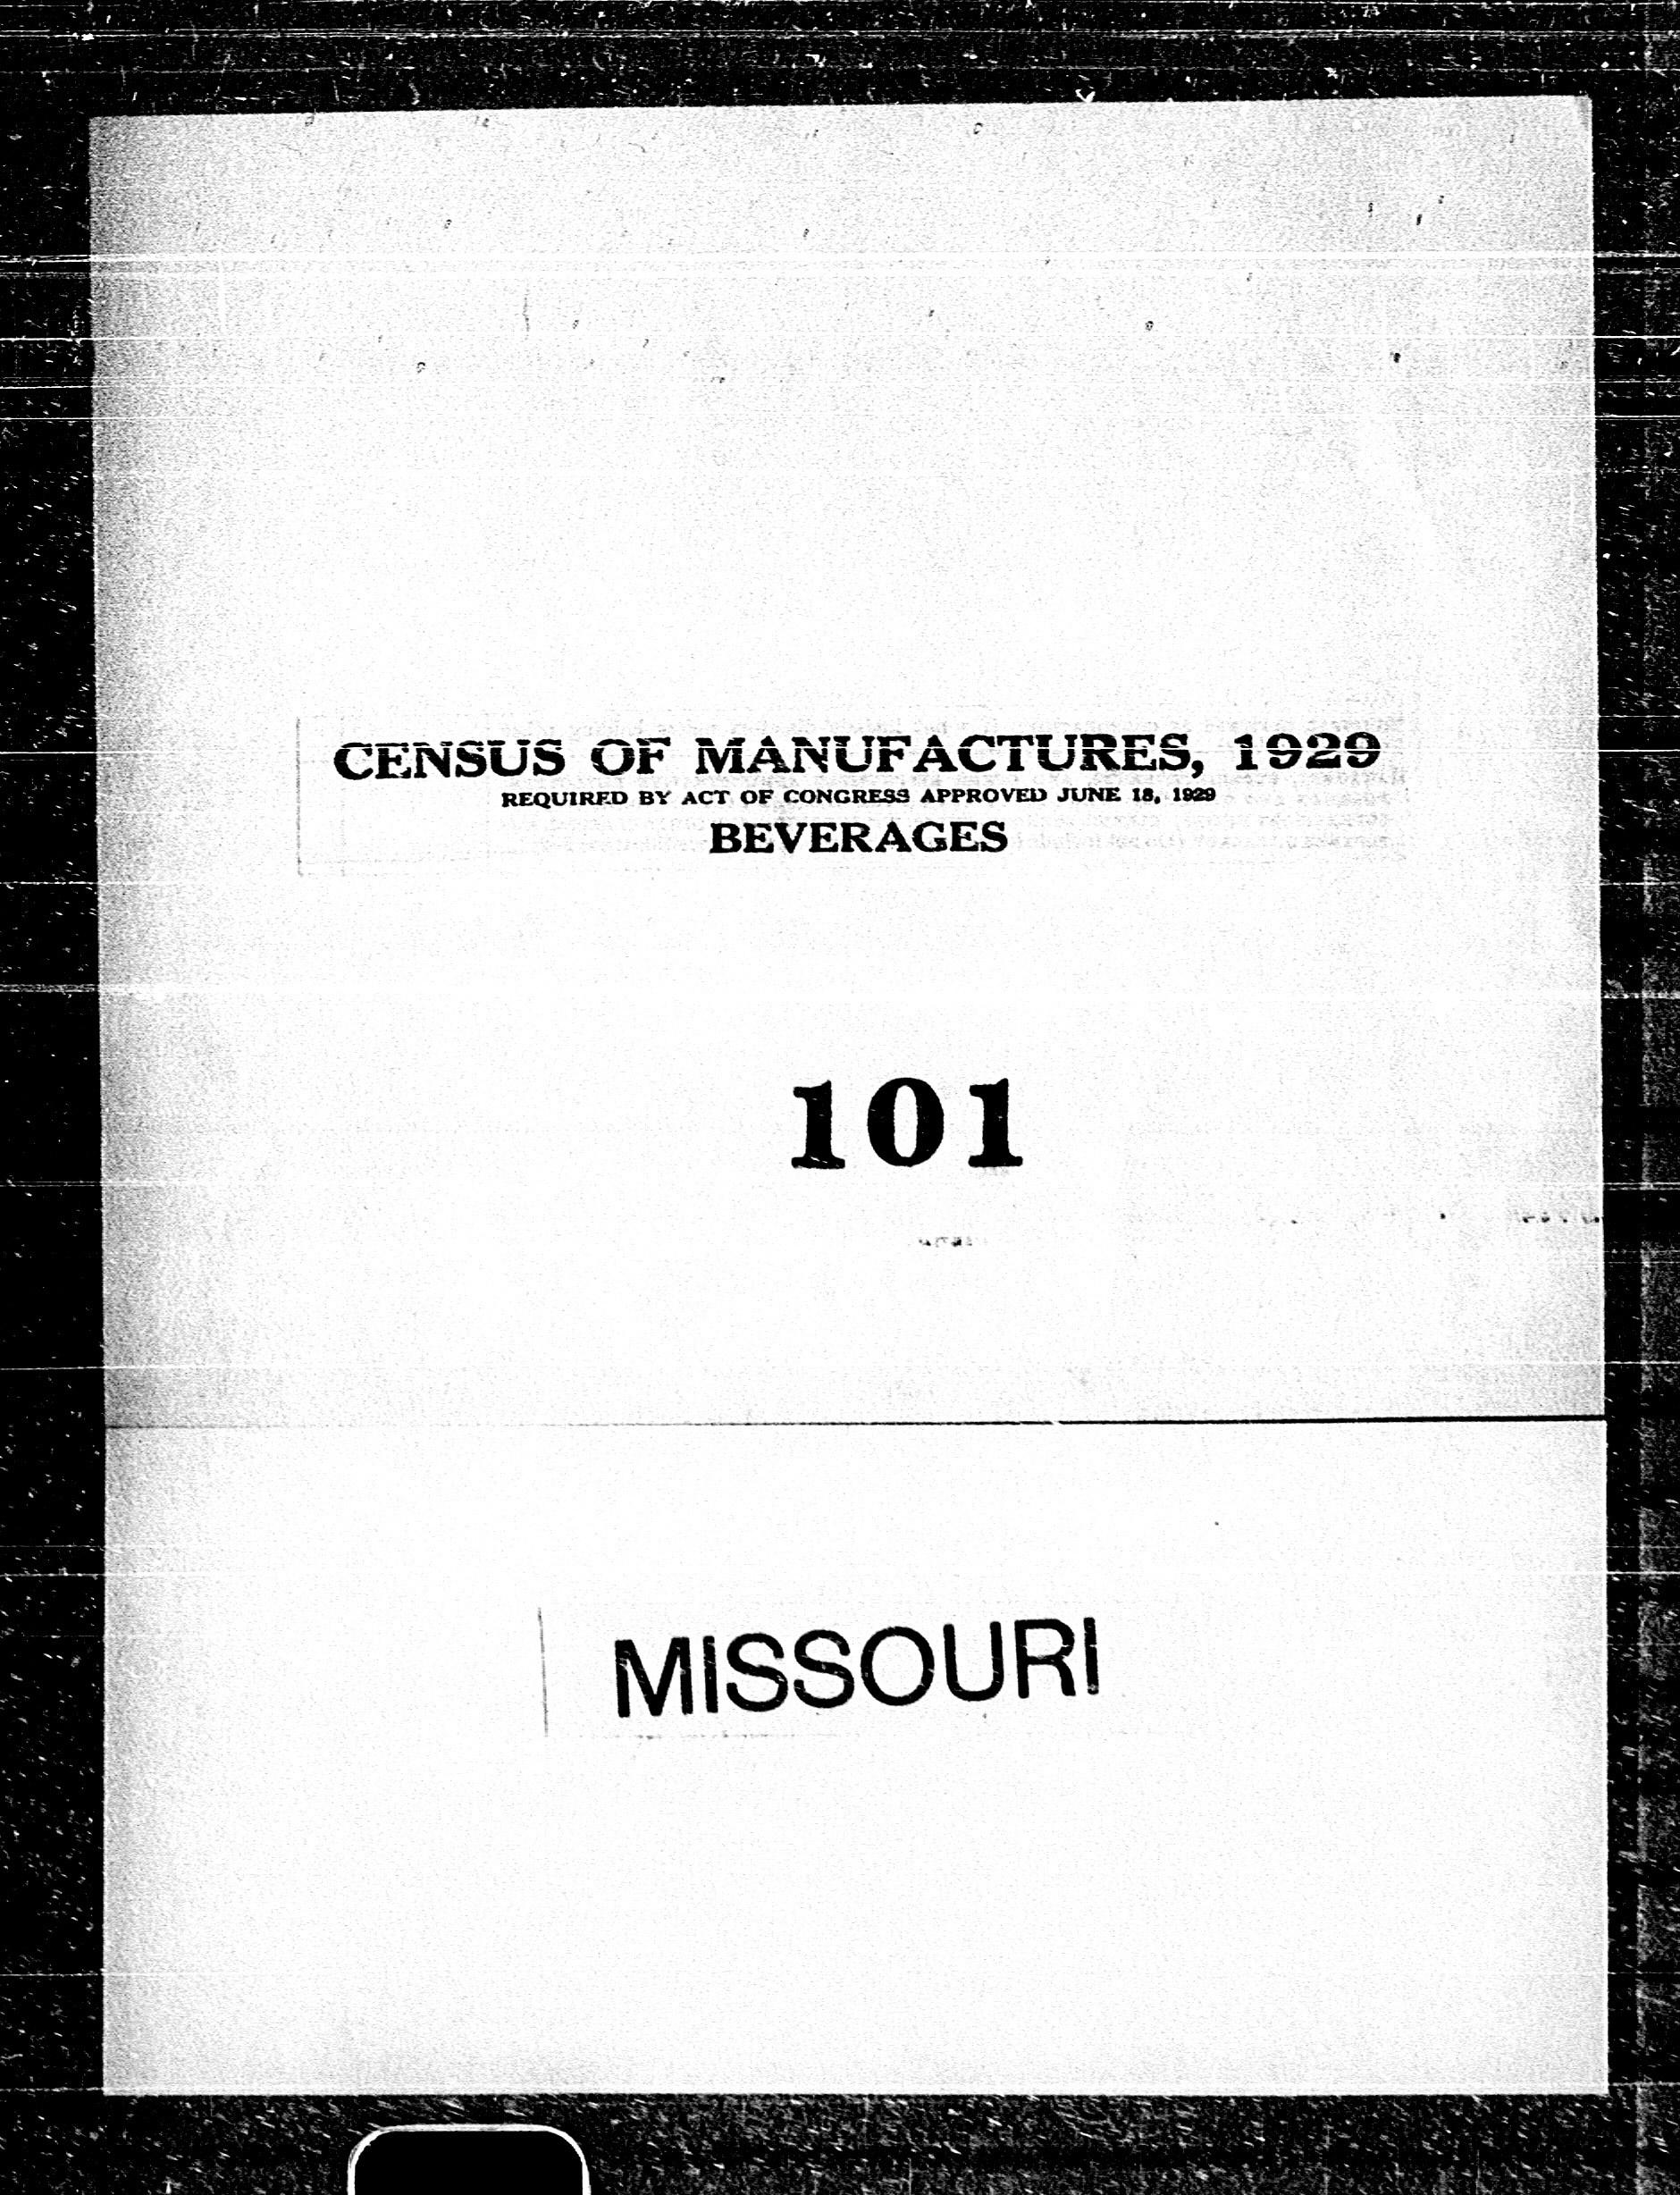 Missouri: Industry No. 101 - Beverages